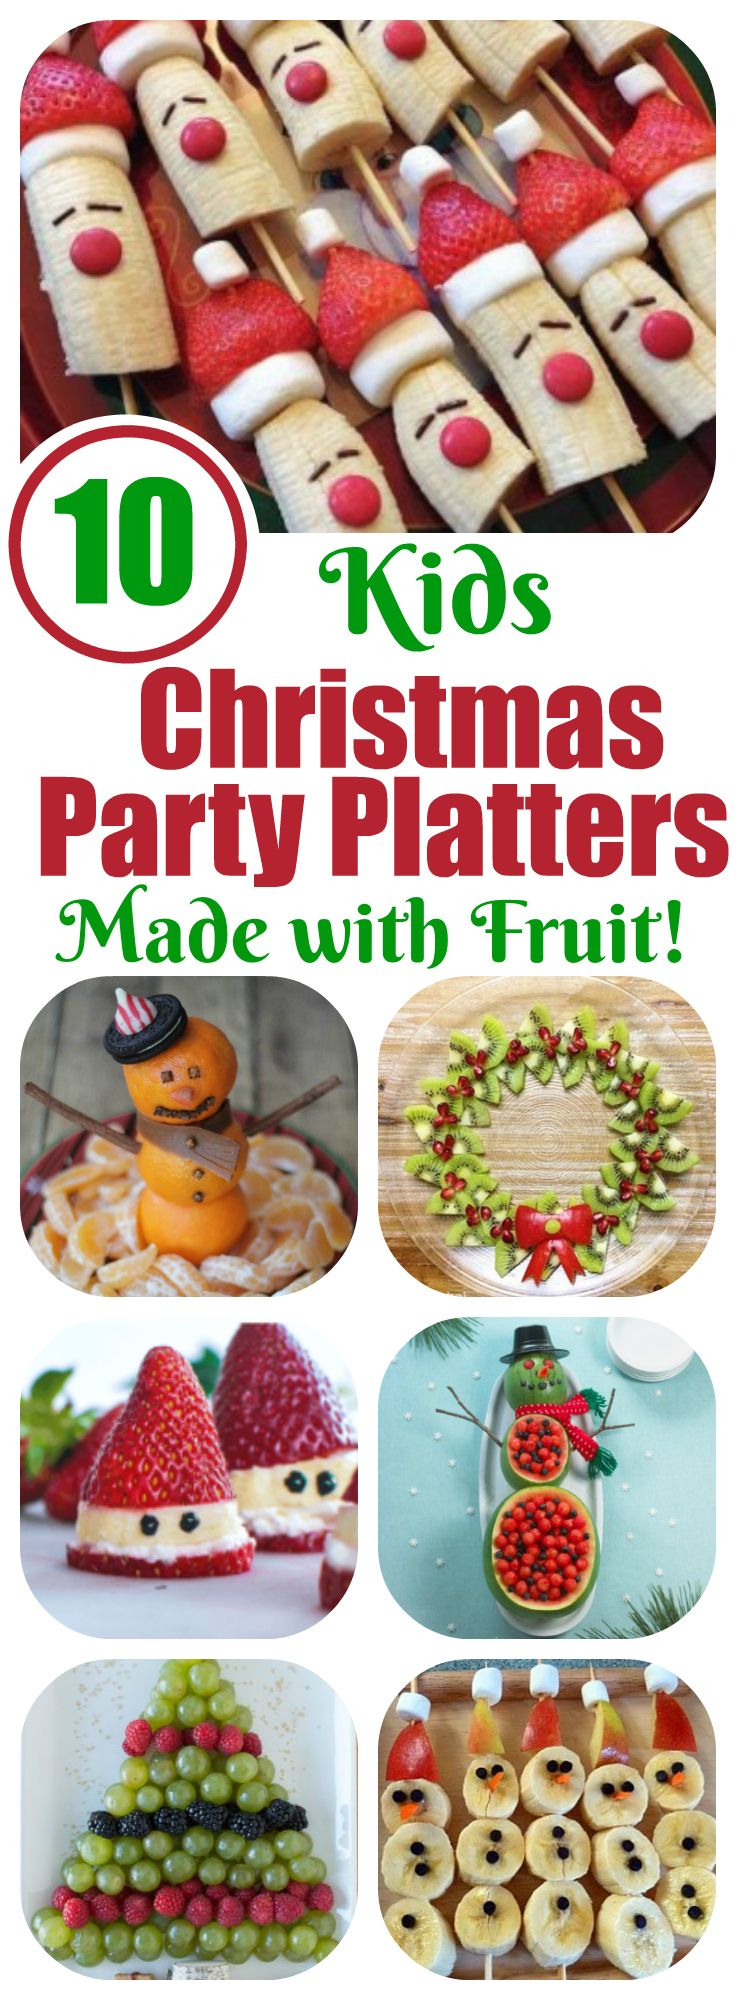 Fruit Platters For Kids: 10 Christmas Party Platters